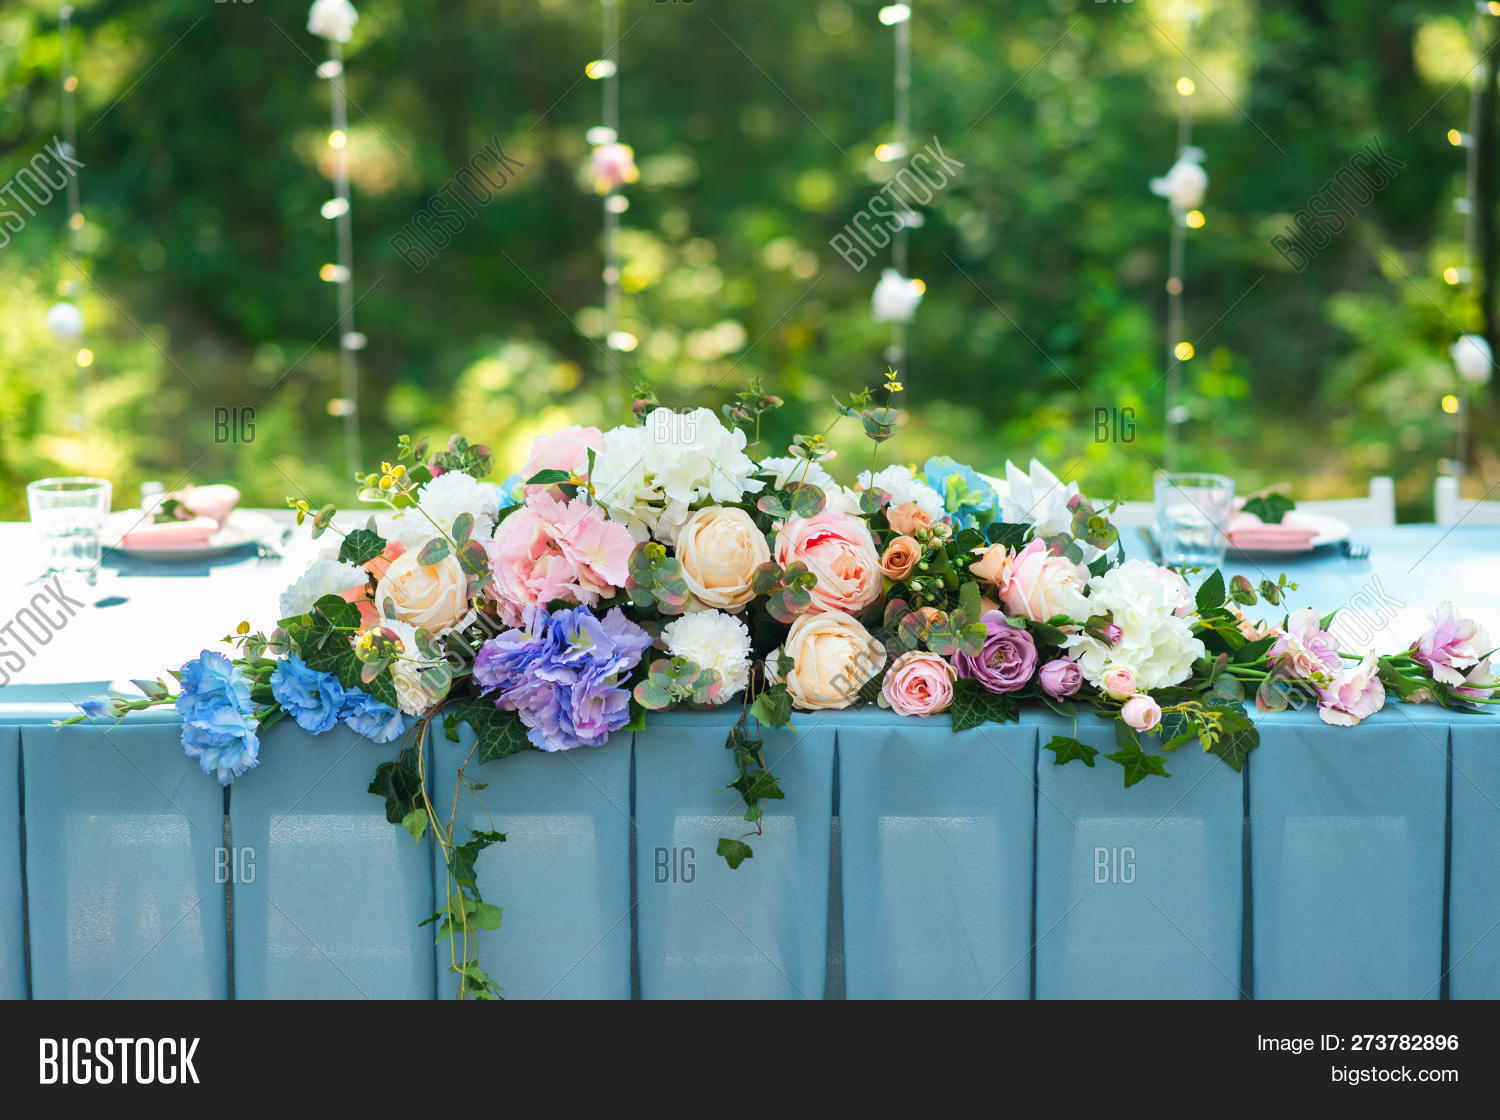 Wedding Decor Table Image Photo Free Trial Bigstock